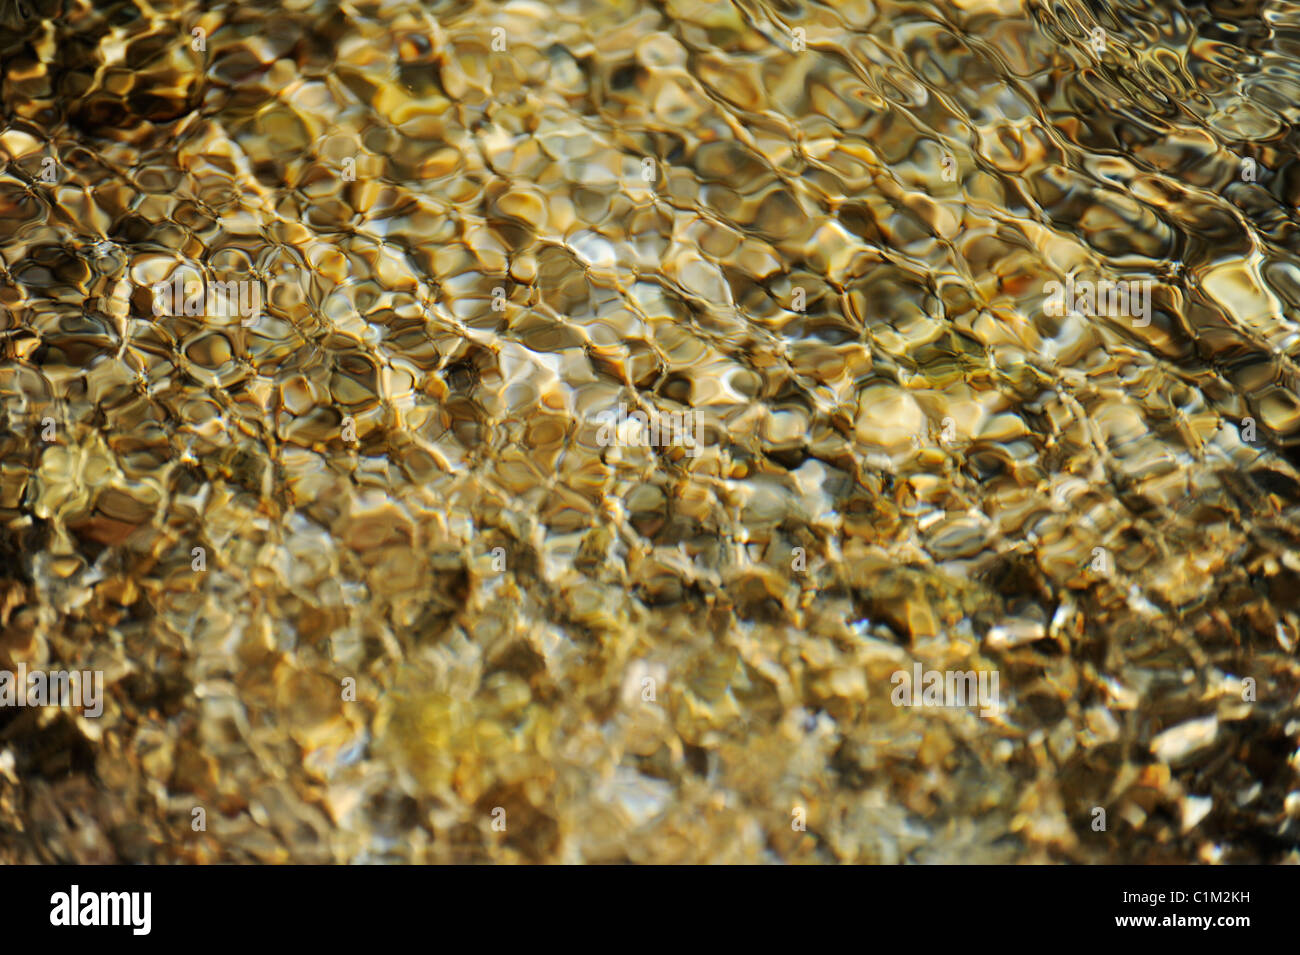 Close-up of water rippling over pebbles in a shallow part of river. - Stock Image